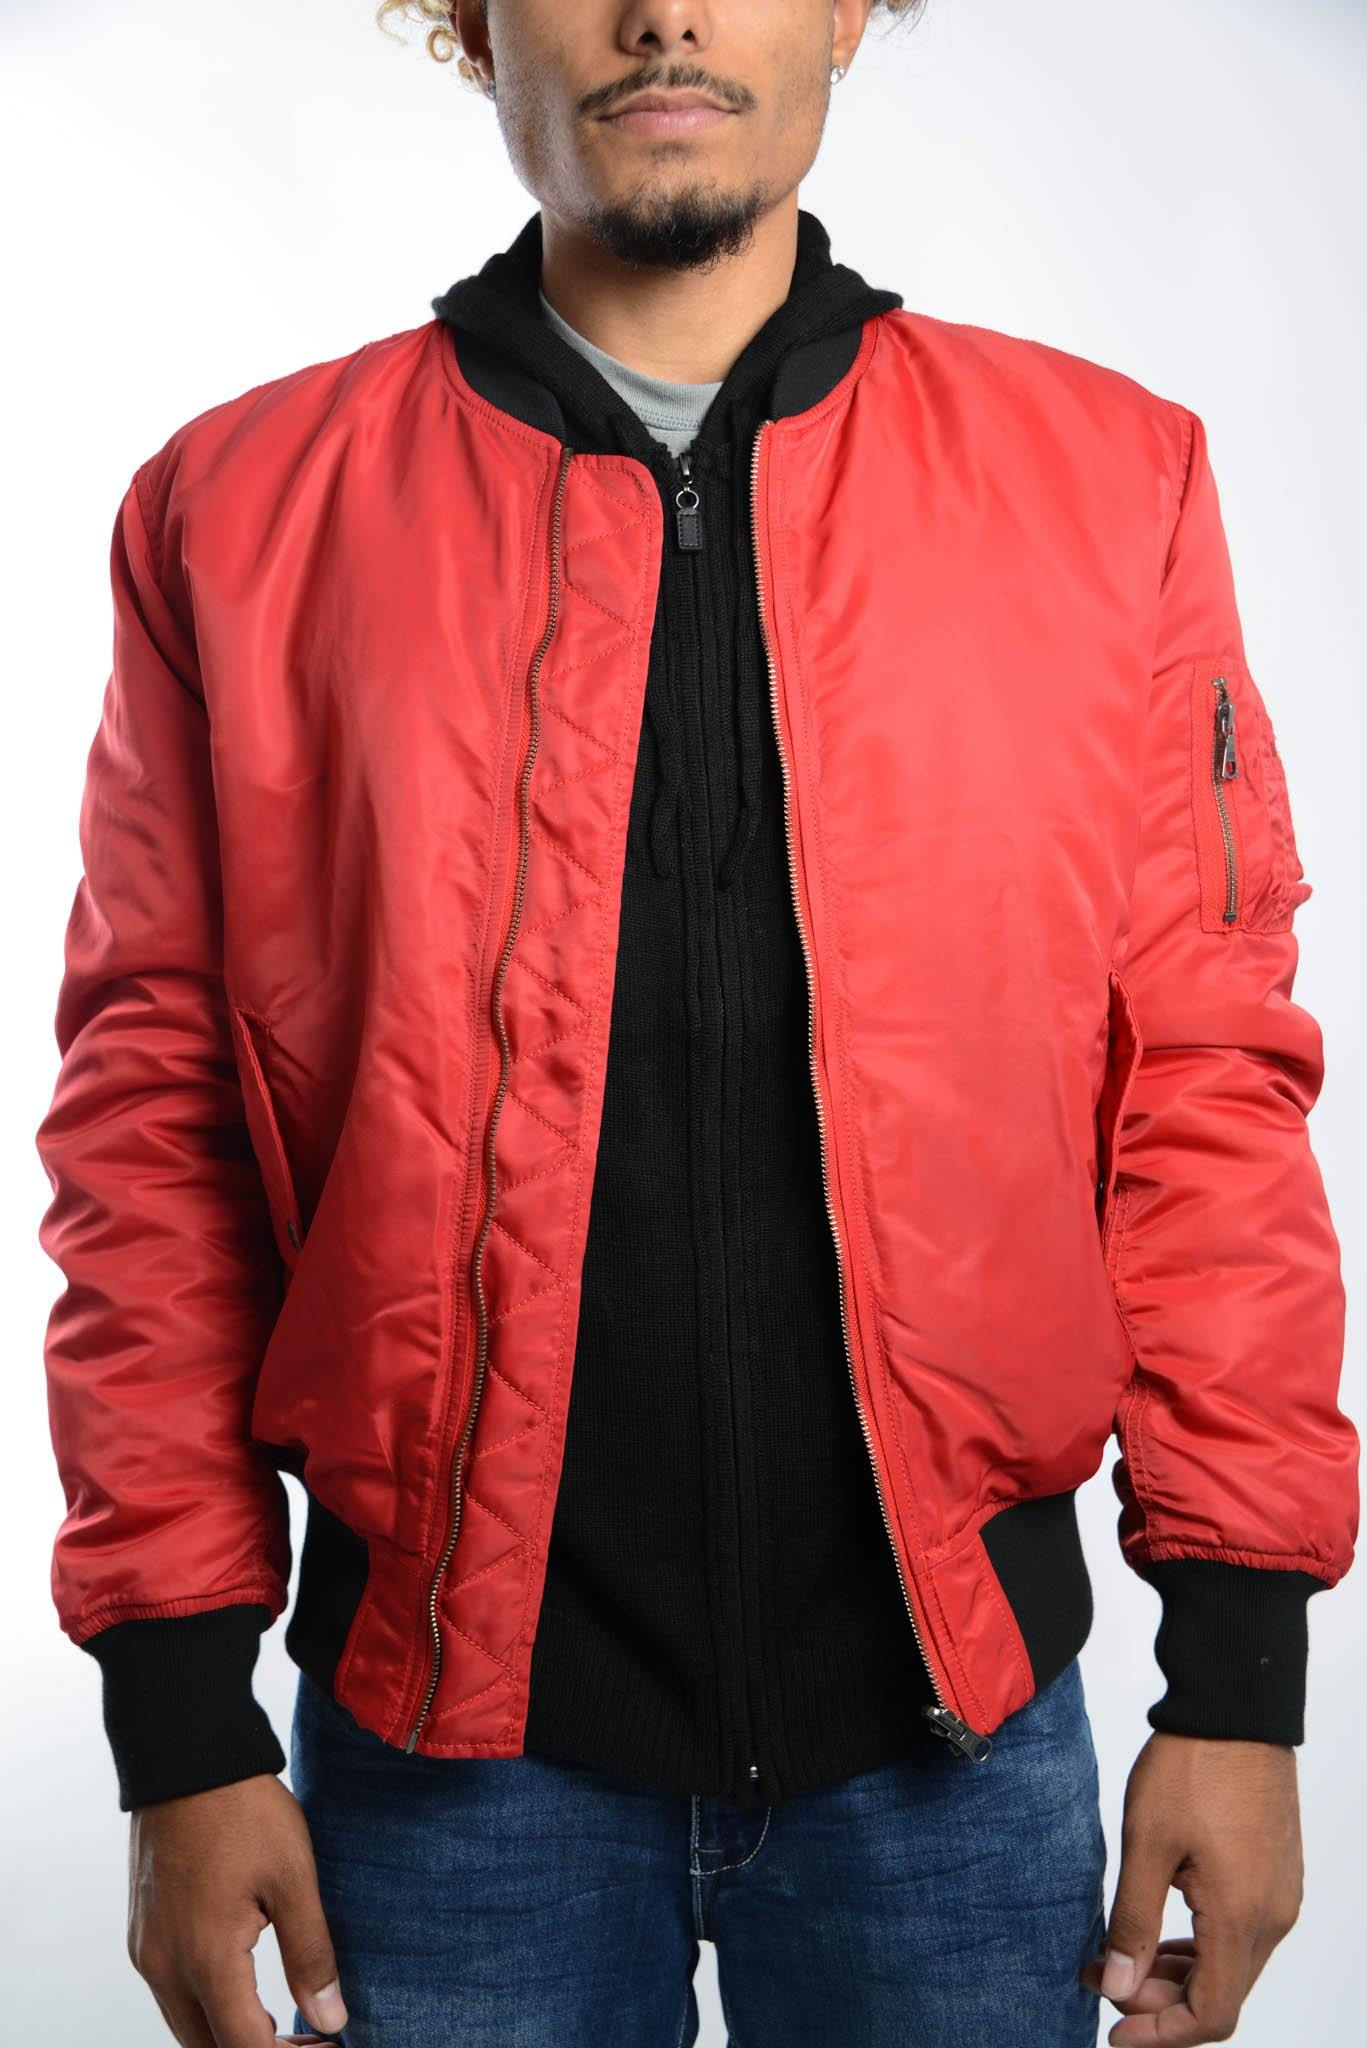 Harrow Bomber Jacket - Haight & Ashbury